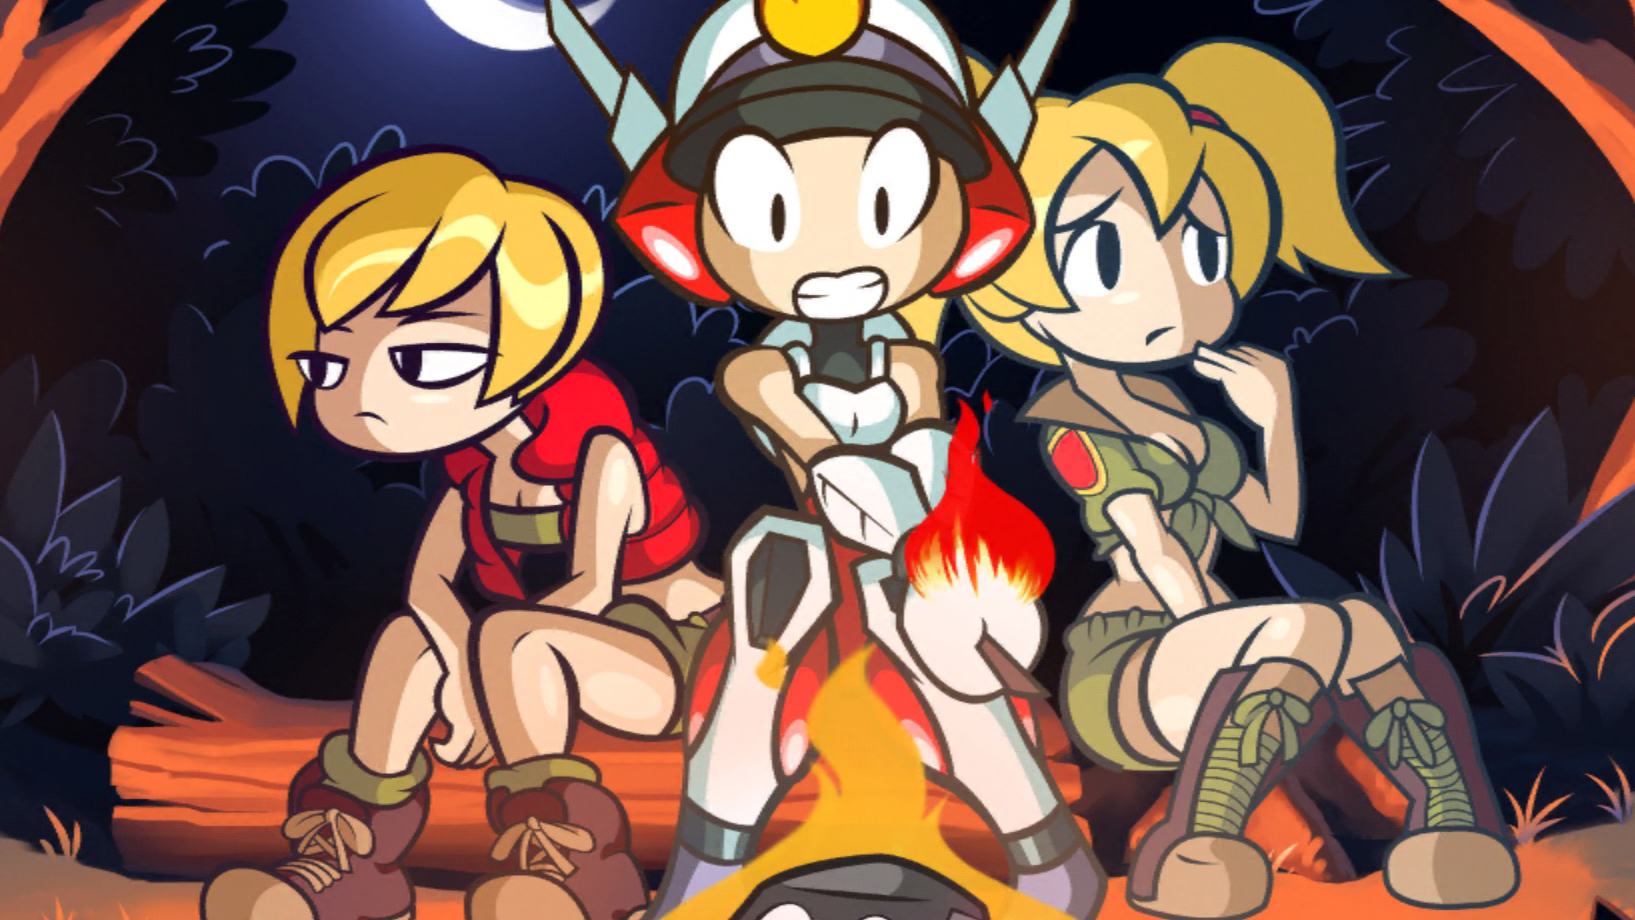 Road To 200 108 Mighty Switch Force 2 D20crit Way Animation I Was Completely Enamored With Played Through The Entire Game In One Day Granted It Didnt Take 15 Hours Beat But All